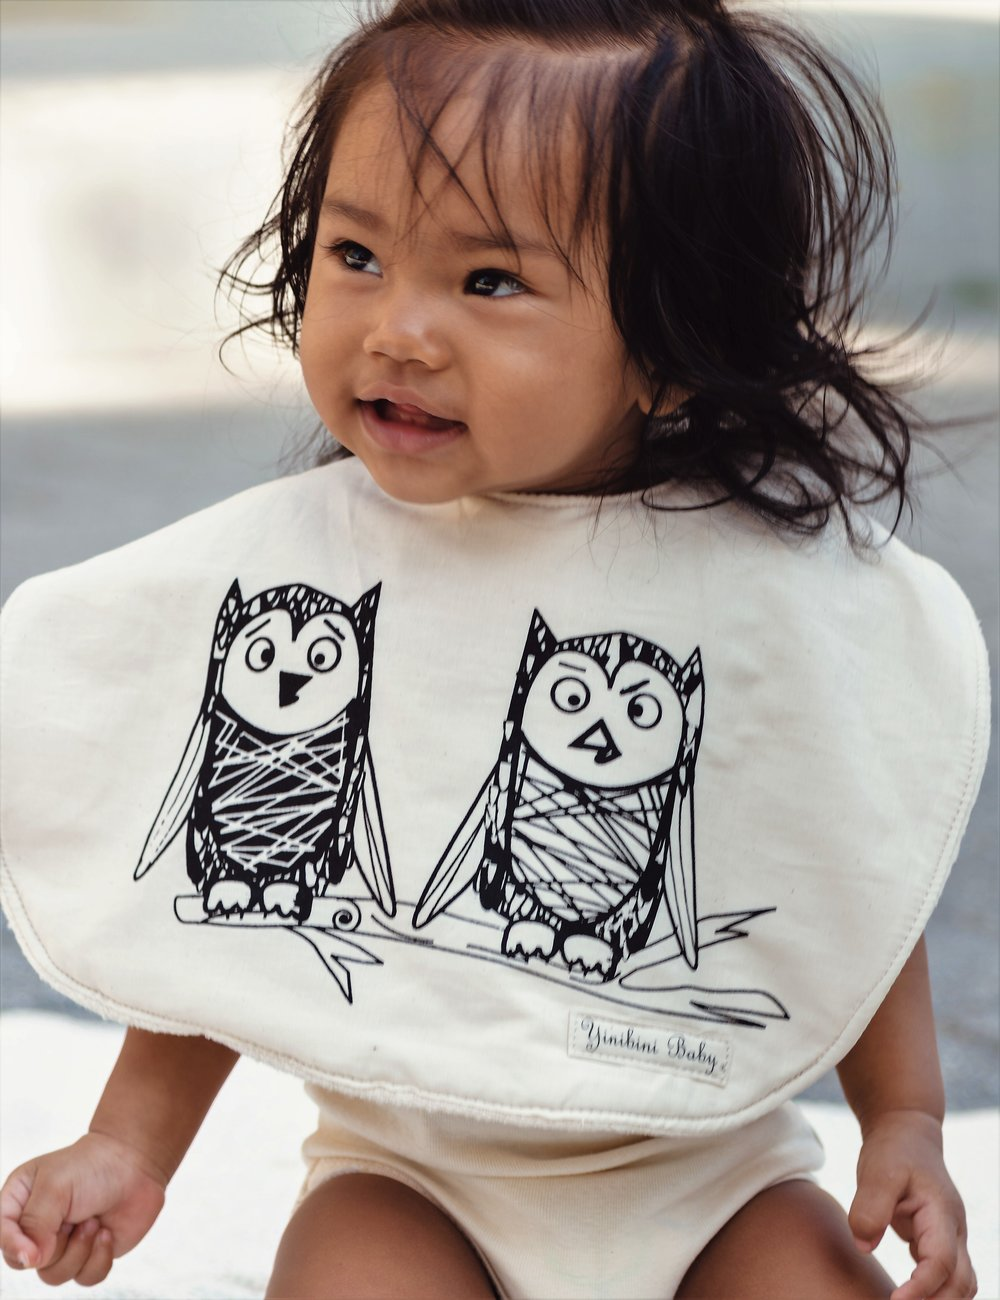 Yinibini Baby model wearing the Owlets Reversible Organic Cotton Bib in Natural